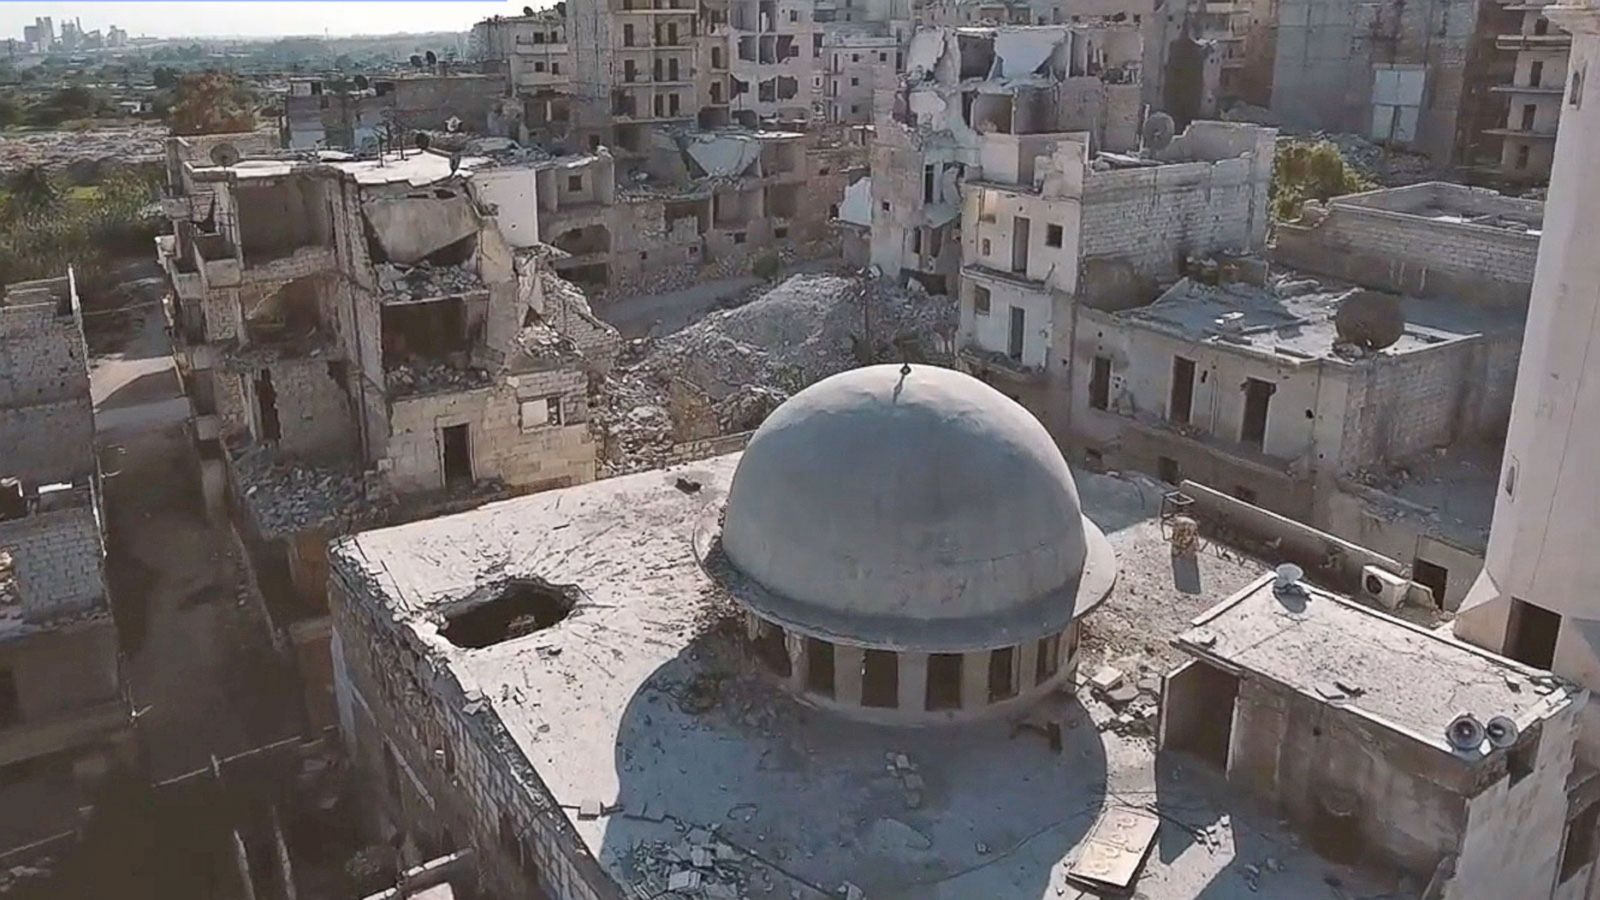 VIDEO: A Look From Above Shows Heavy Destruction In Aleppo After Repeated Bombing